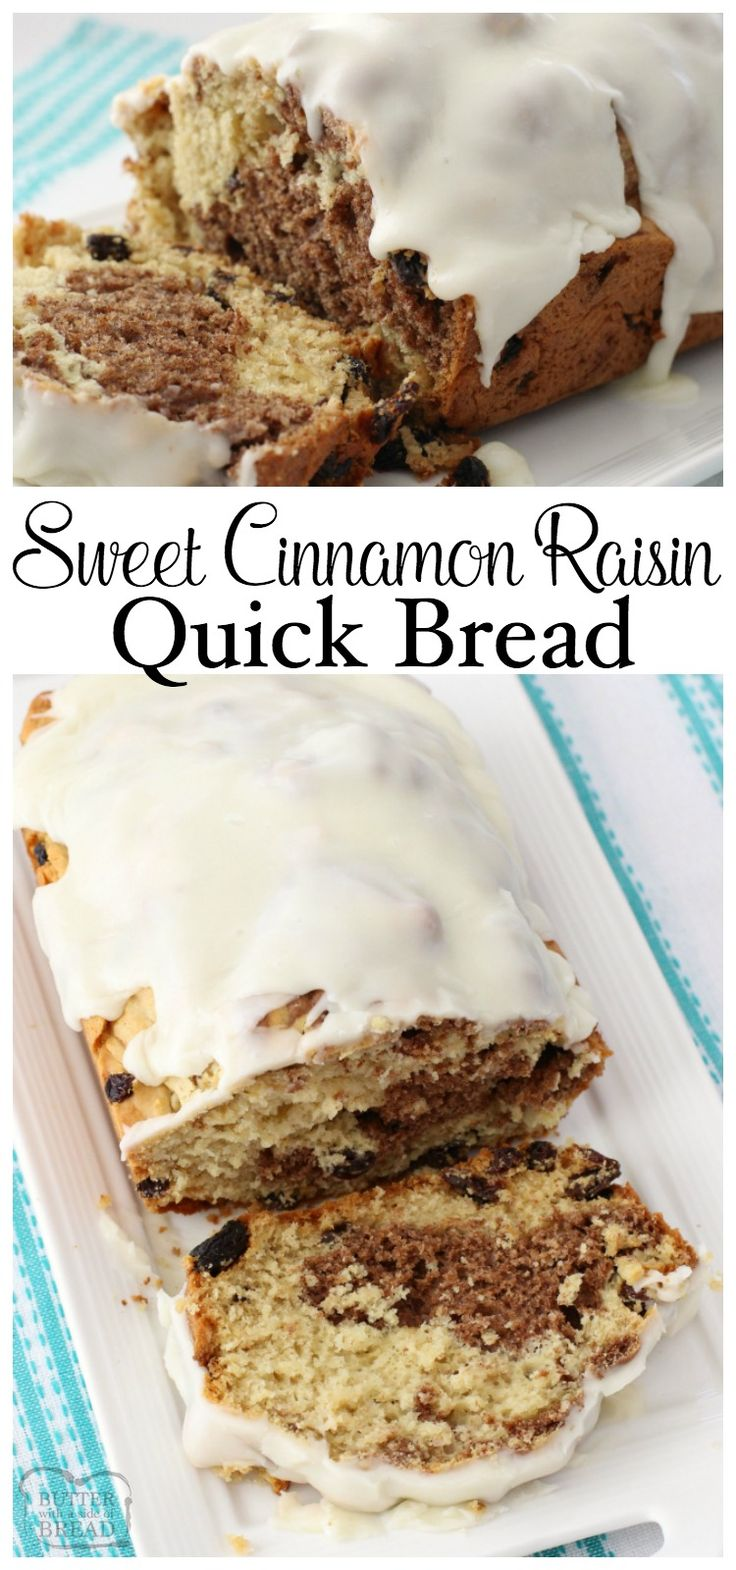 No yeast needed for this soft Sweet Cinnamon Raisin Quick Bread! Easy to make with a lovely flavor & texture, you've got to save this recipe! Butter With A Side of Bread via @ButterGirls